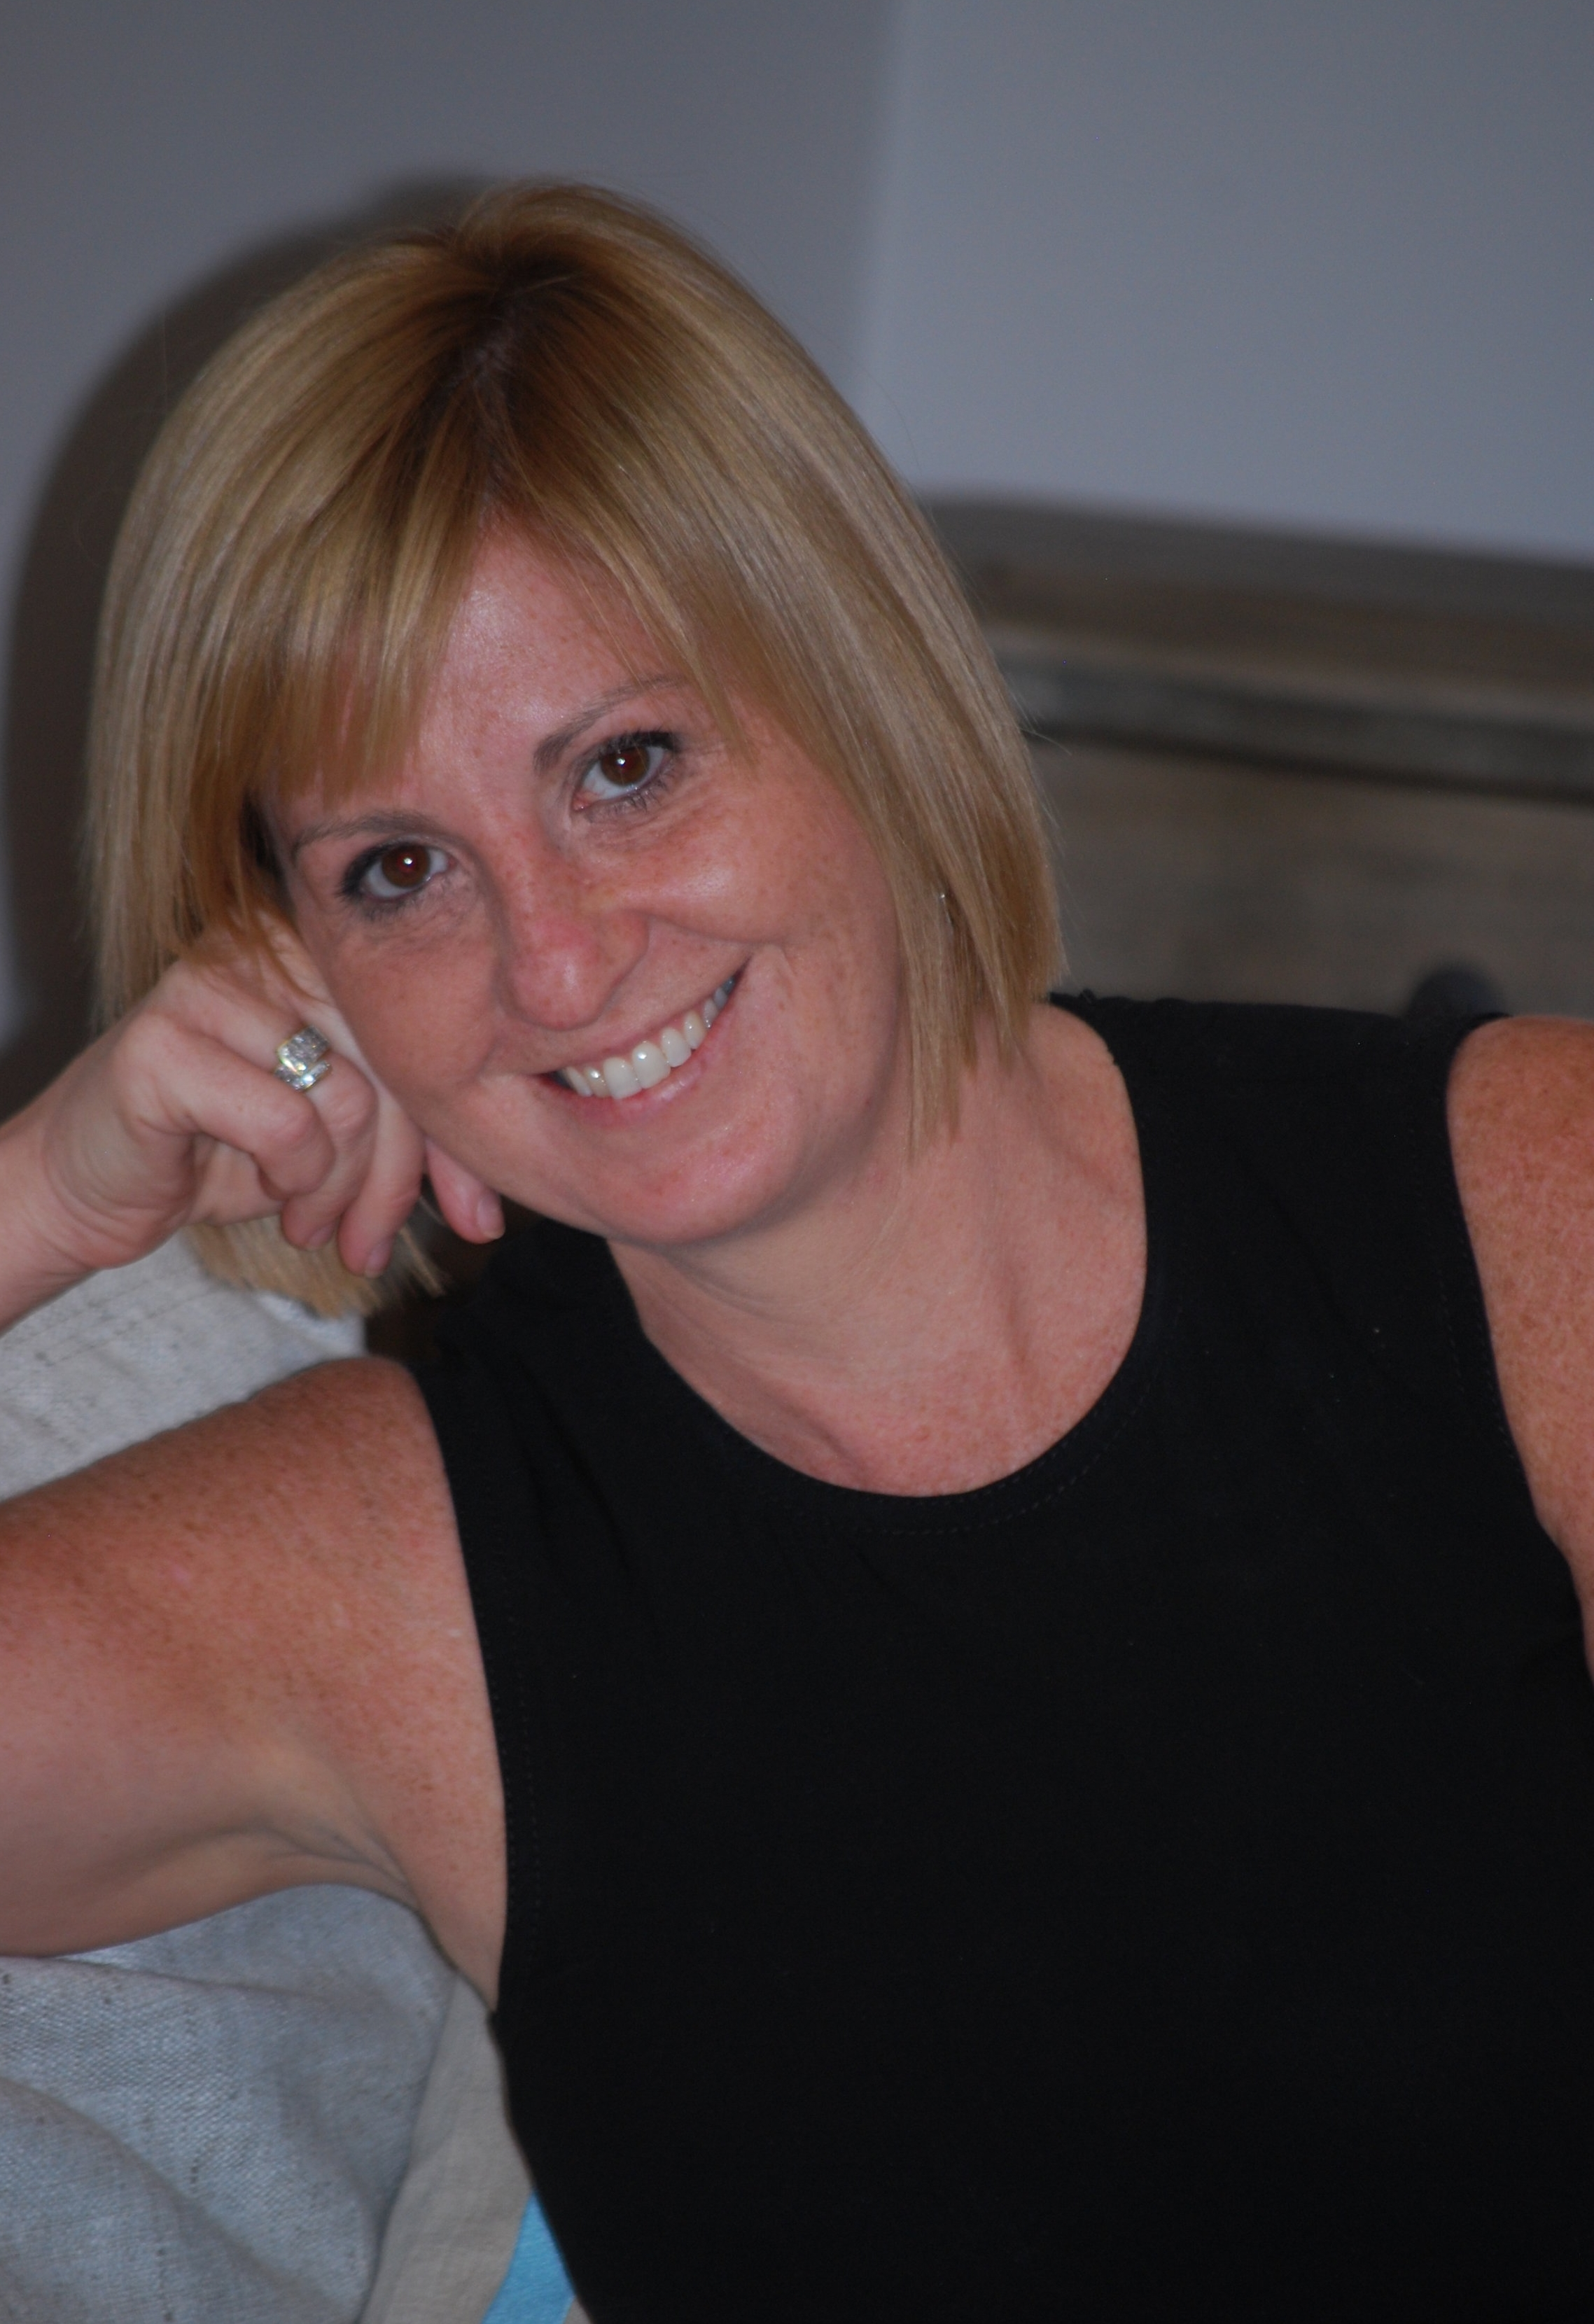 - Jennifer BoltonDesignerI have been in the furniture industry since 2000. Starting as a sales rep for a high end lighting company, I went on to work for large home furnishings corporation.  I then went on to open a furniture manufacturing company with partners in India and South Africa.  It was so successful, I opened two of my own stores.  After closing my business to start my family, Mara and I reconnected after many years.  We immediately hit it off and I joined The Store's Team in 2013.  I have combined my furniture manufacturing experience with Eileen and Patrice's in depth knowledge of design to become a great addition to The Store.